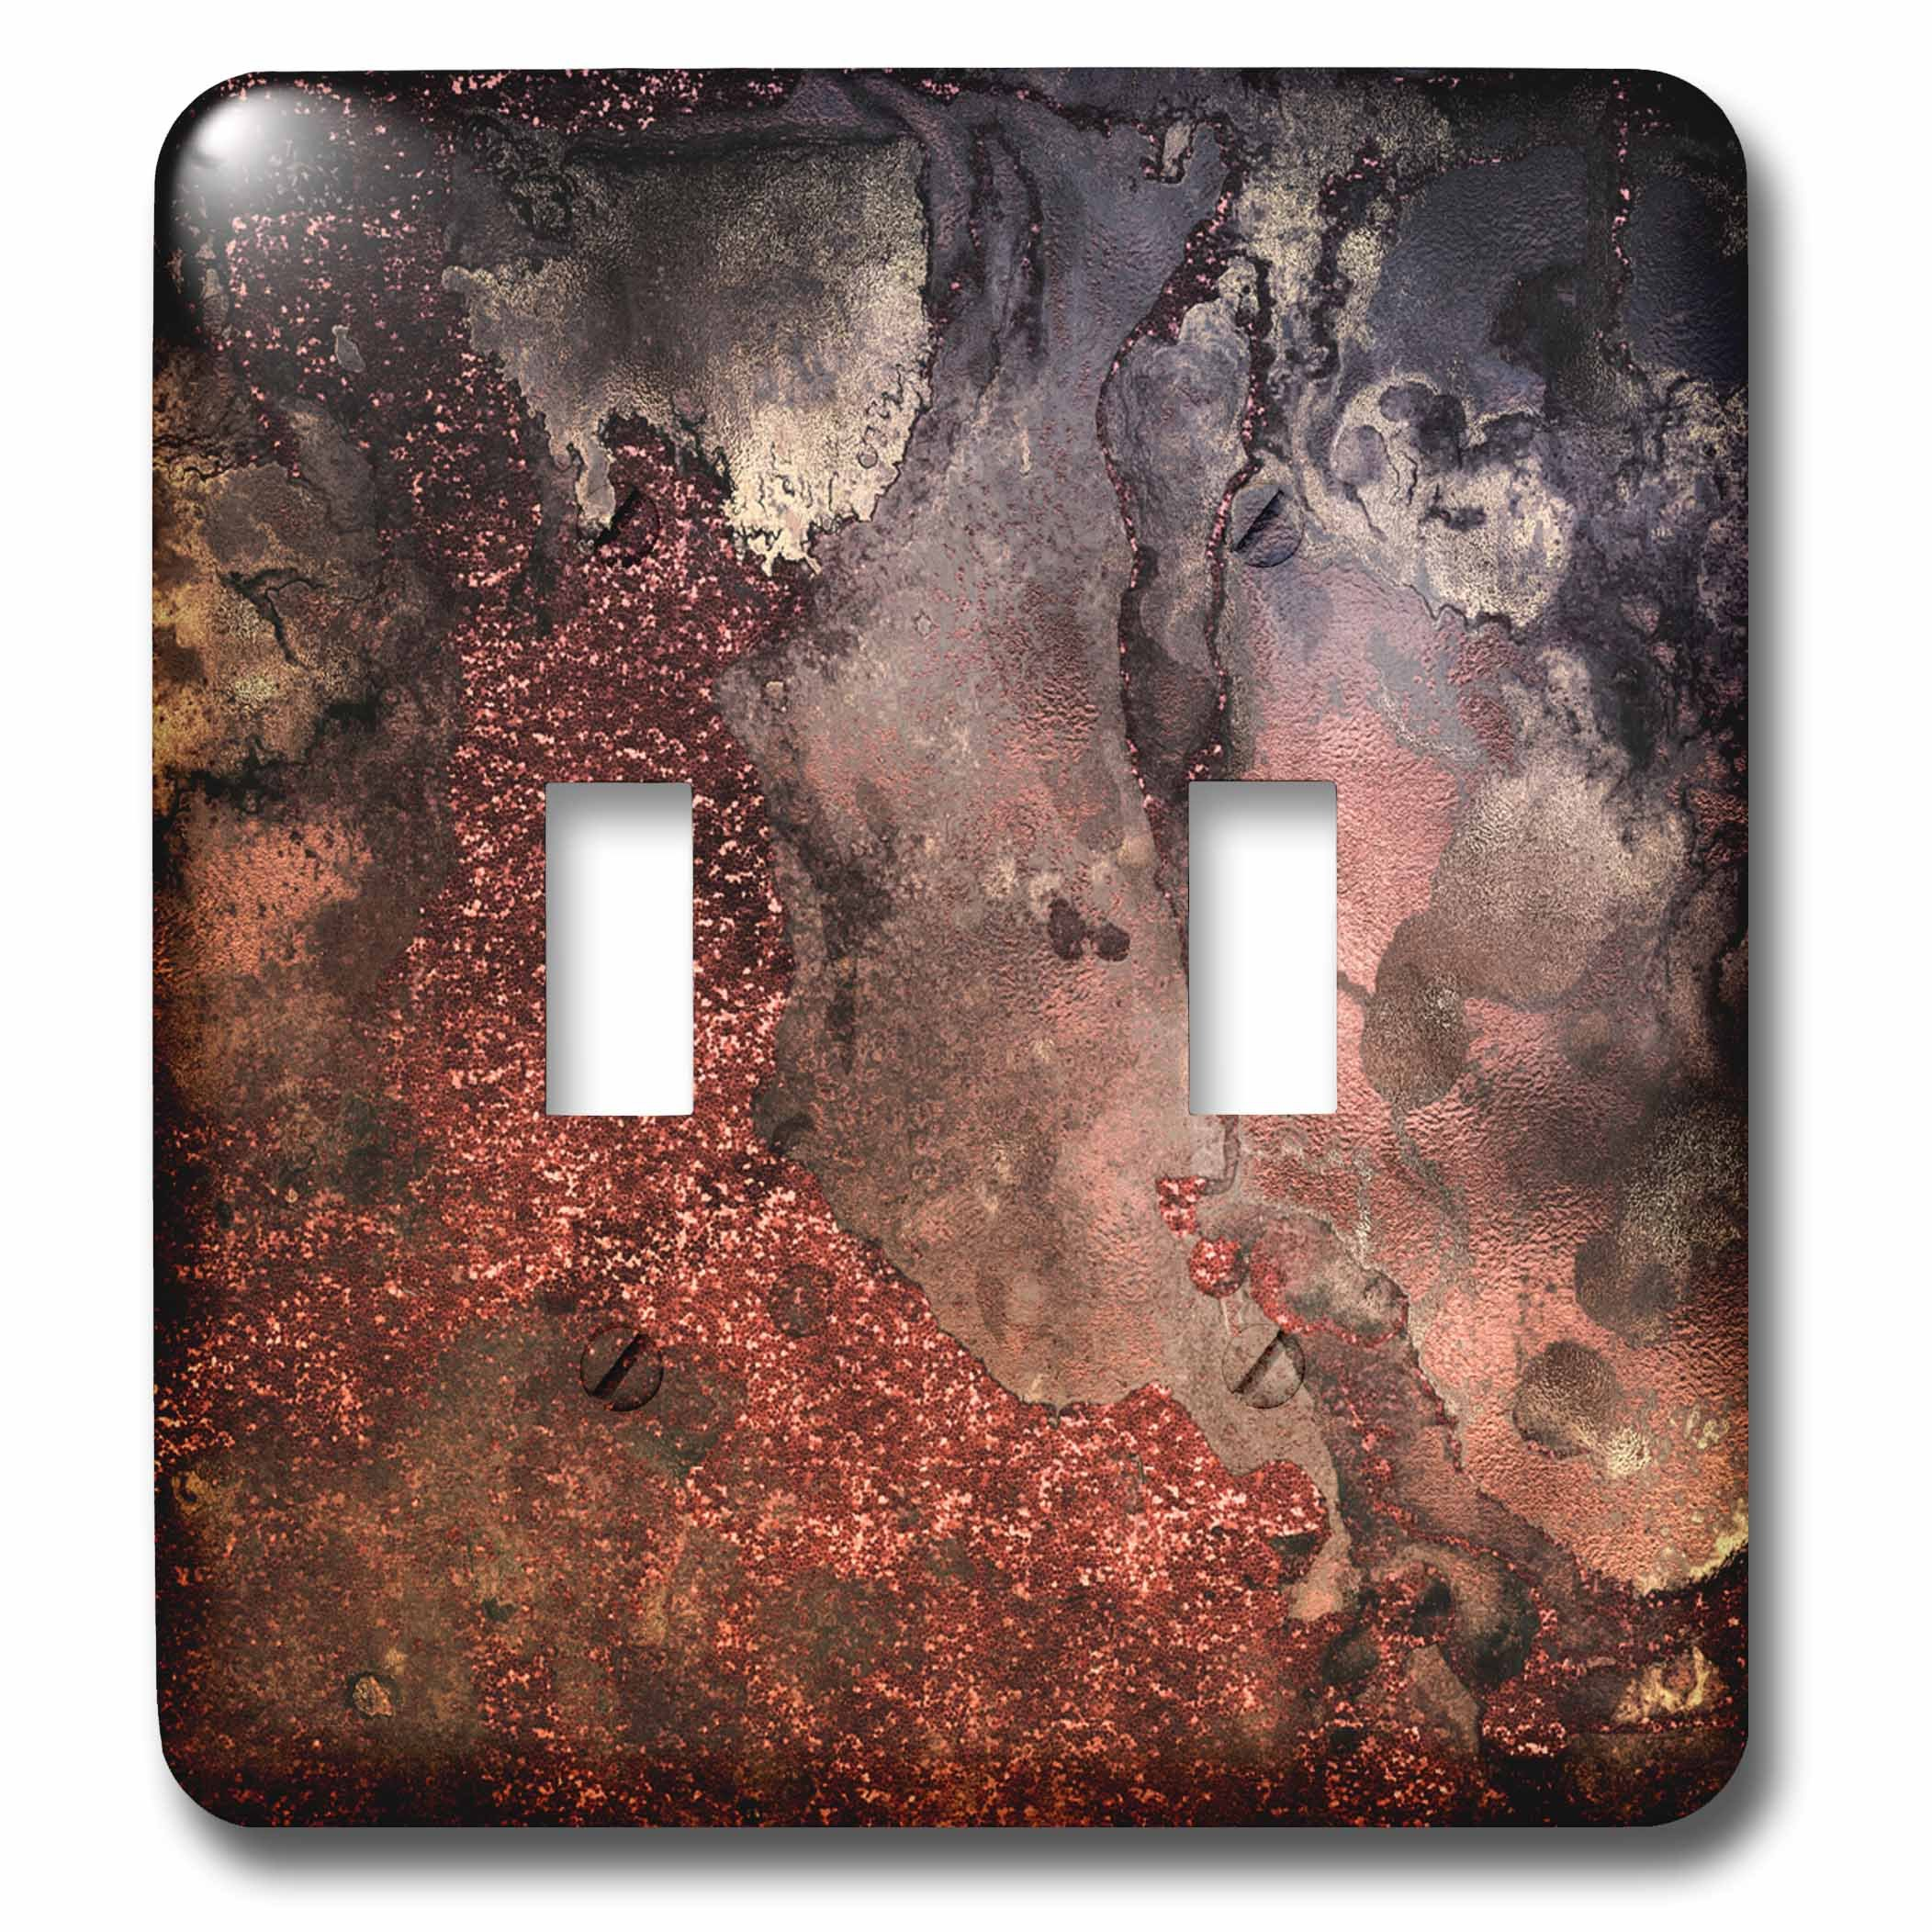 3dRose Uta Naumann Faux Glitter Pattern - Luxury Copper Ombre Gem Stone Marble Glitter Metallic Faux Print - Light Switch Covers - double toggle switch (lsp_269017_2) by 3dRose (Image #1)